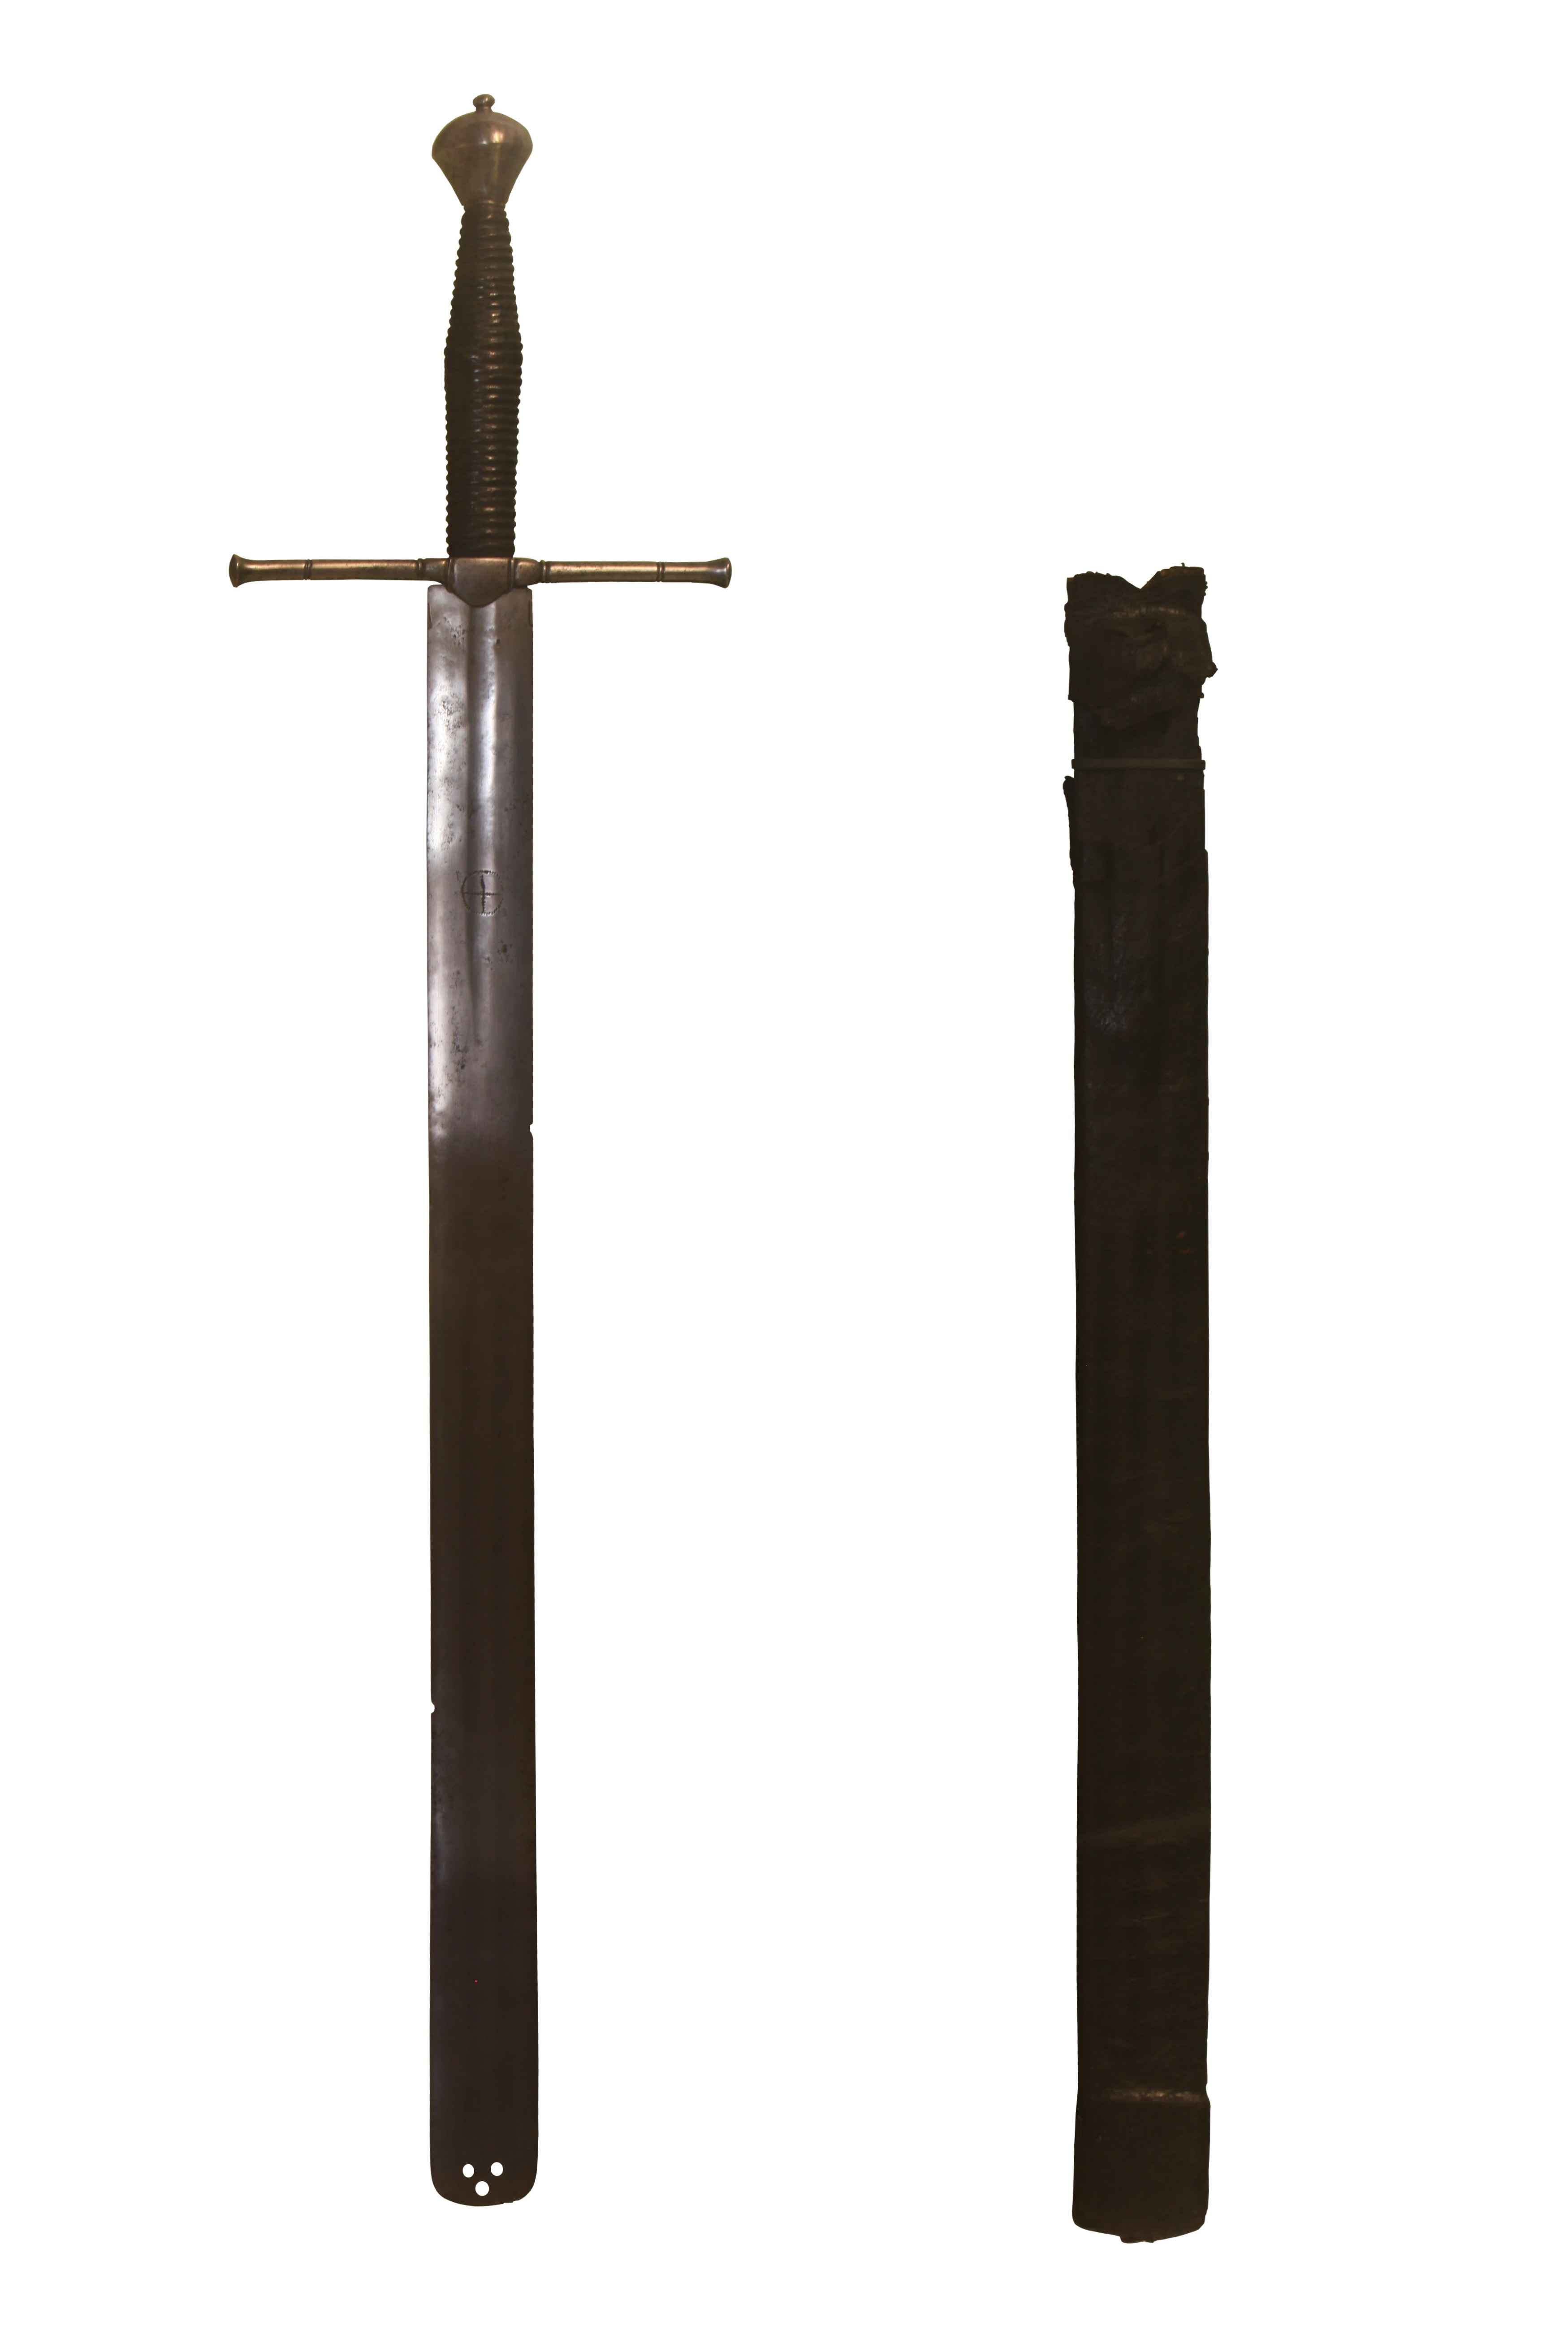 Executioner's sword - Wikipedia